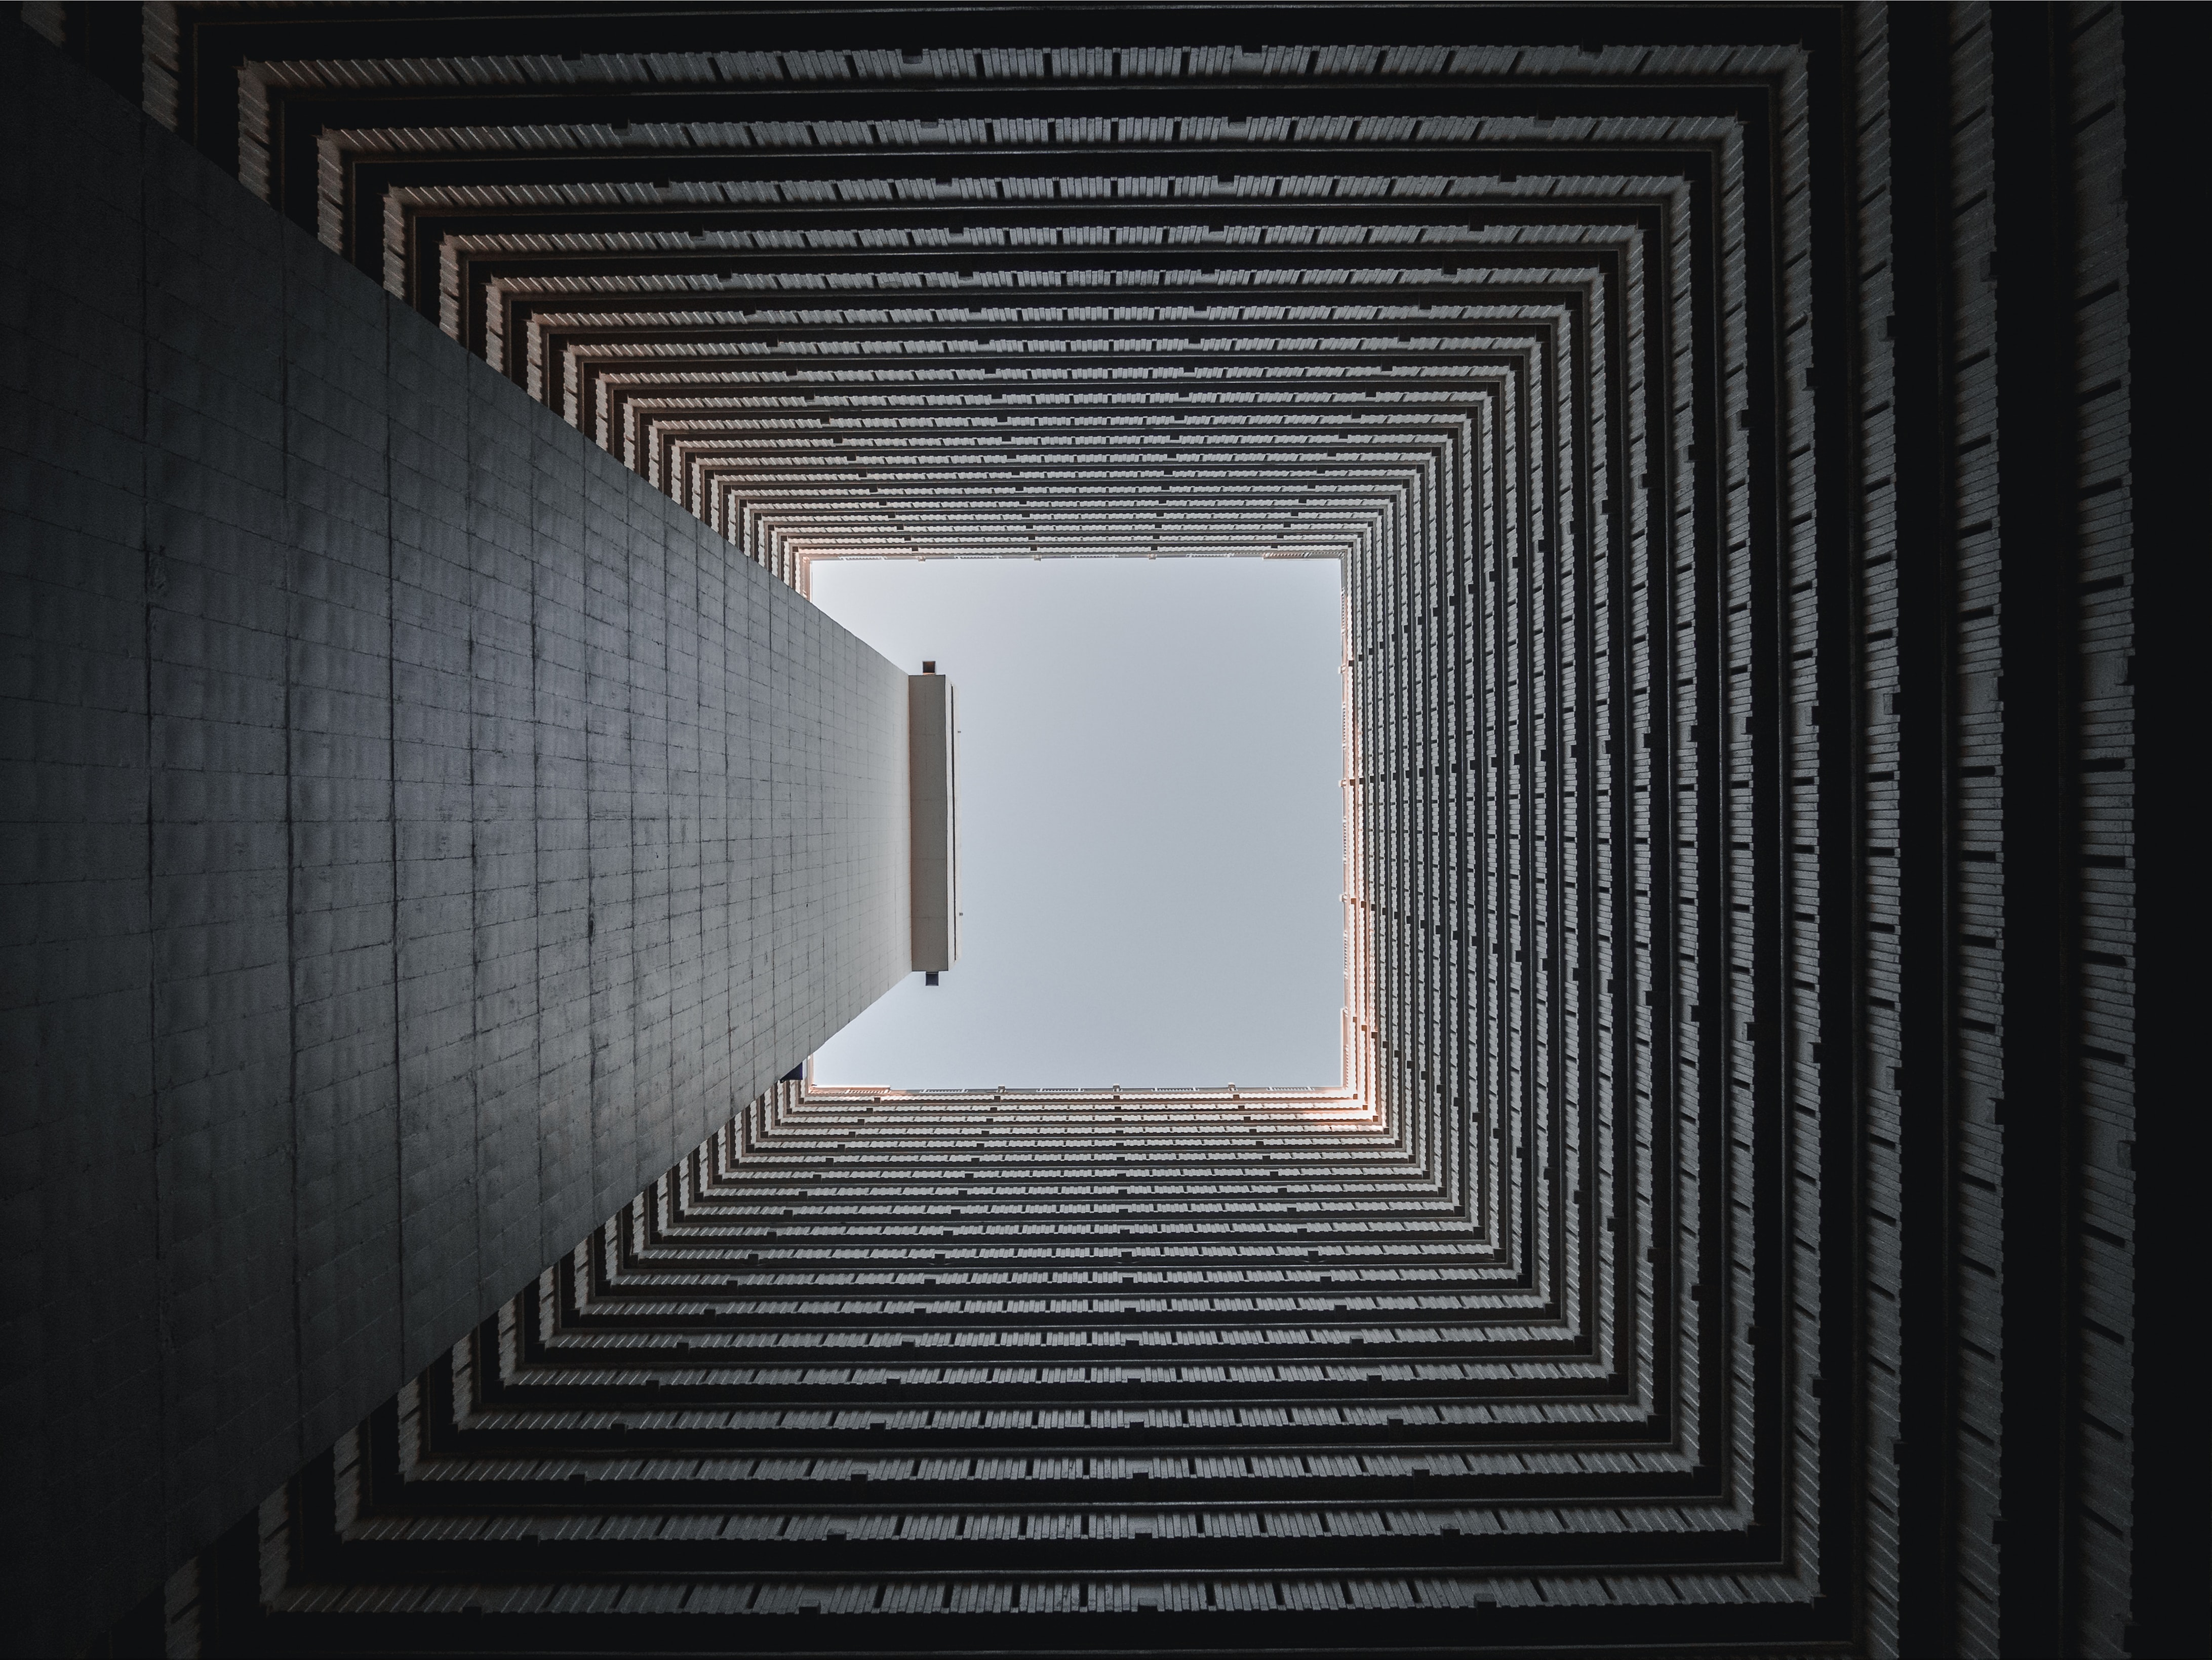 View from the bottom of a square well on the blue sky above